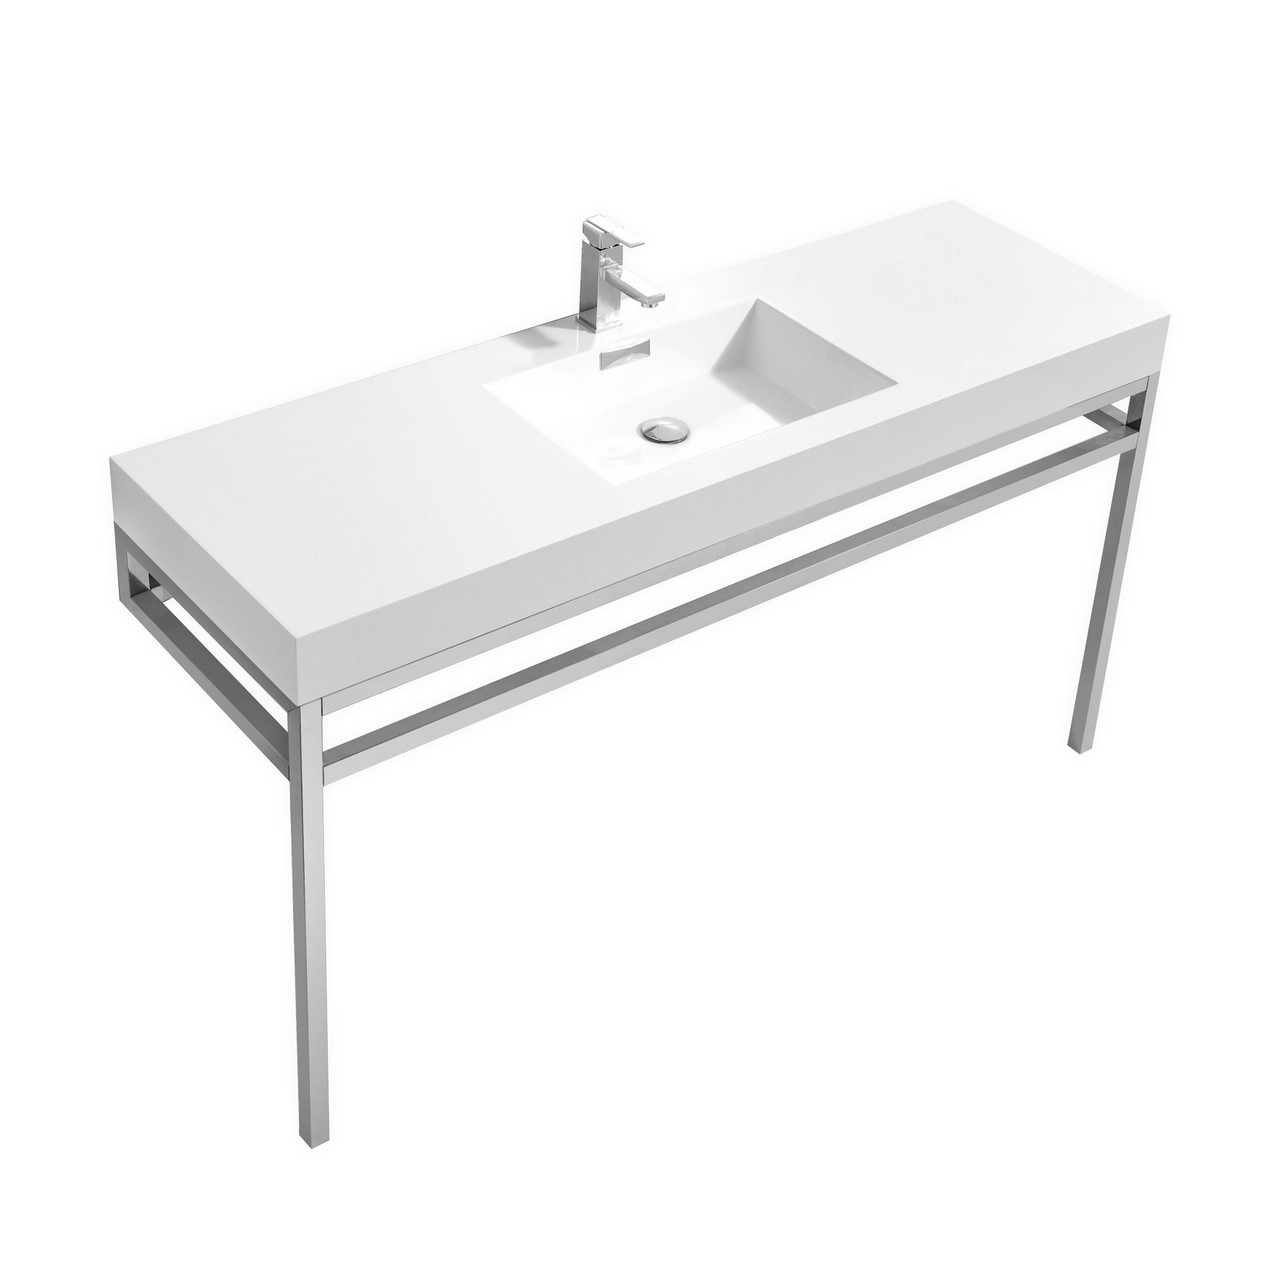 "Modern Lux 60"" Single Sink Stainless Steel Console w/ White Acrylic Sink - Chrome"